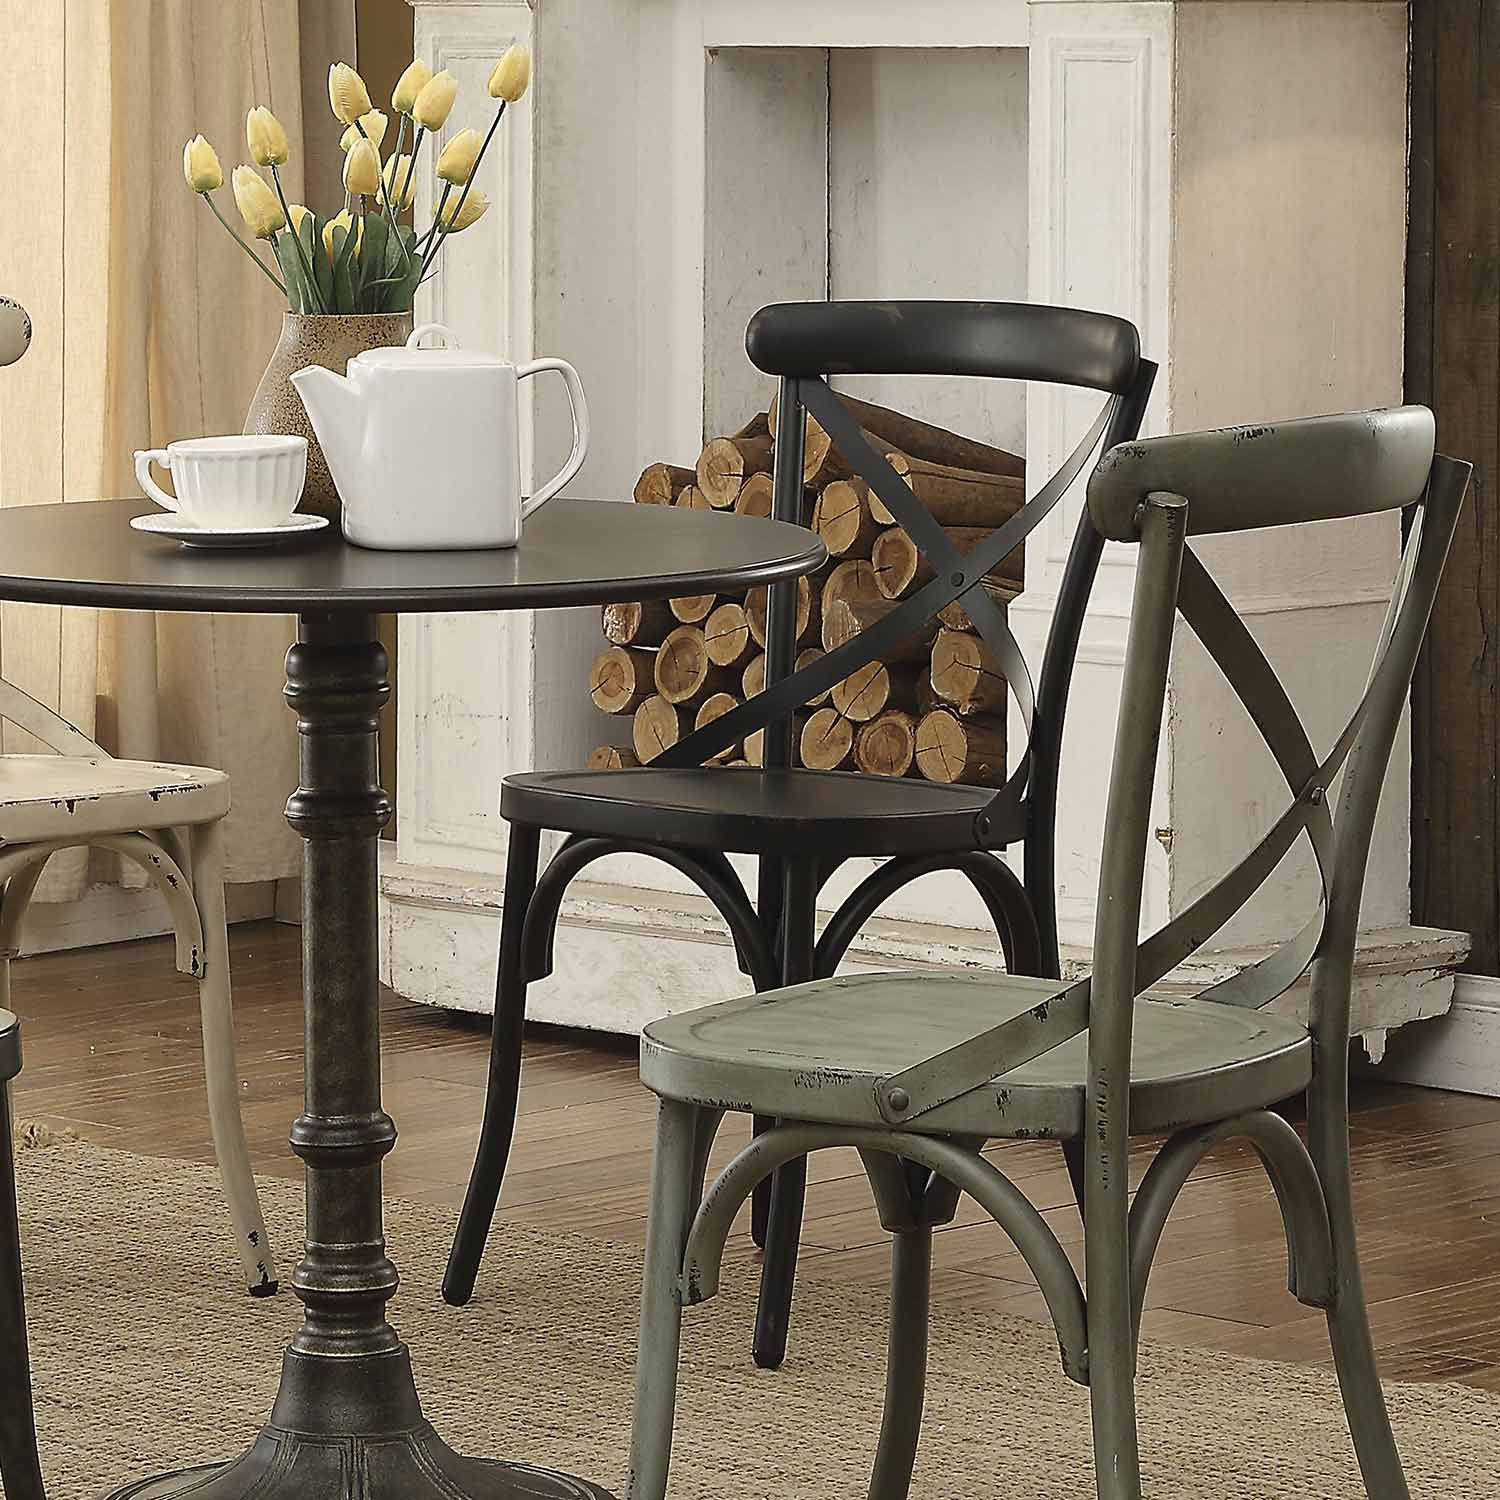 rustic metal dining chairs fisher price infant chair coaster nagel side dark 105312